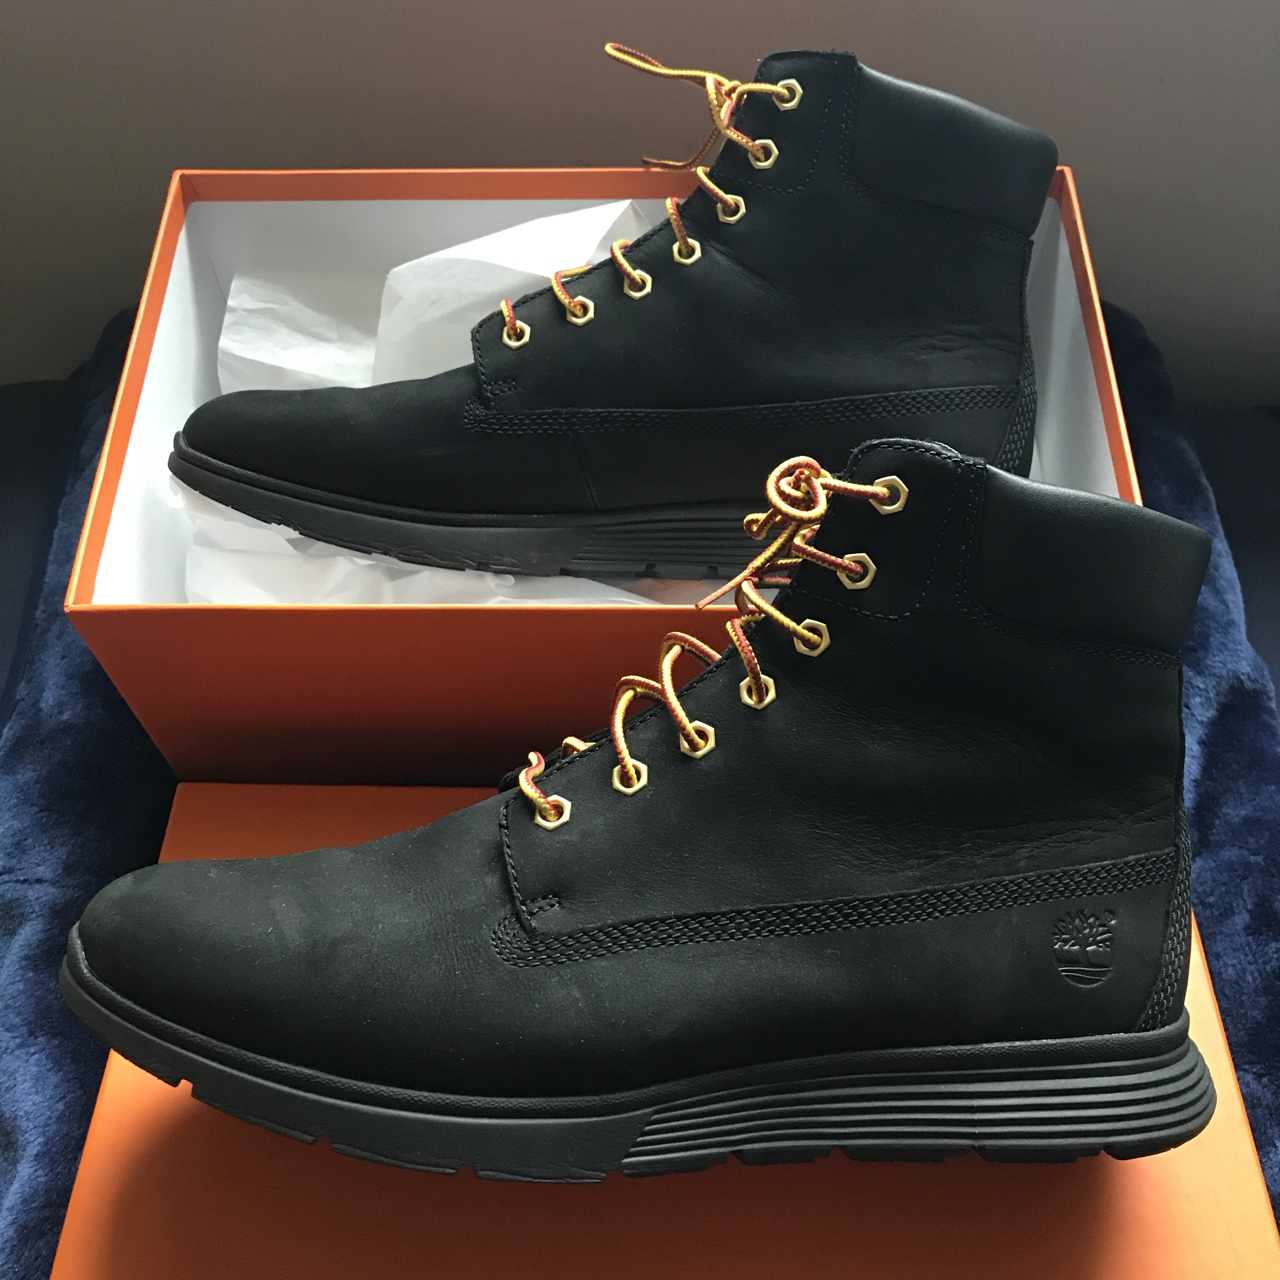 Timberland boots black Yellow laces